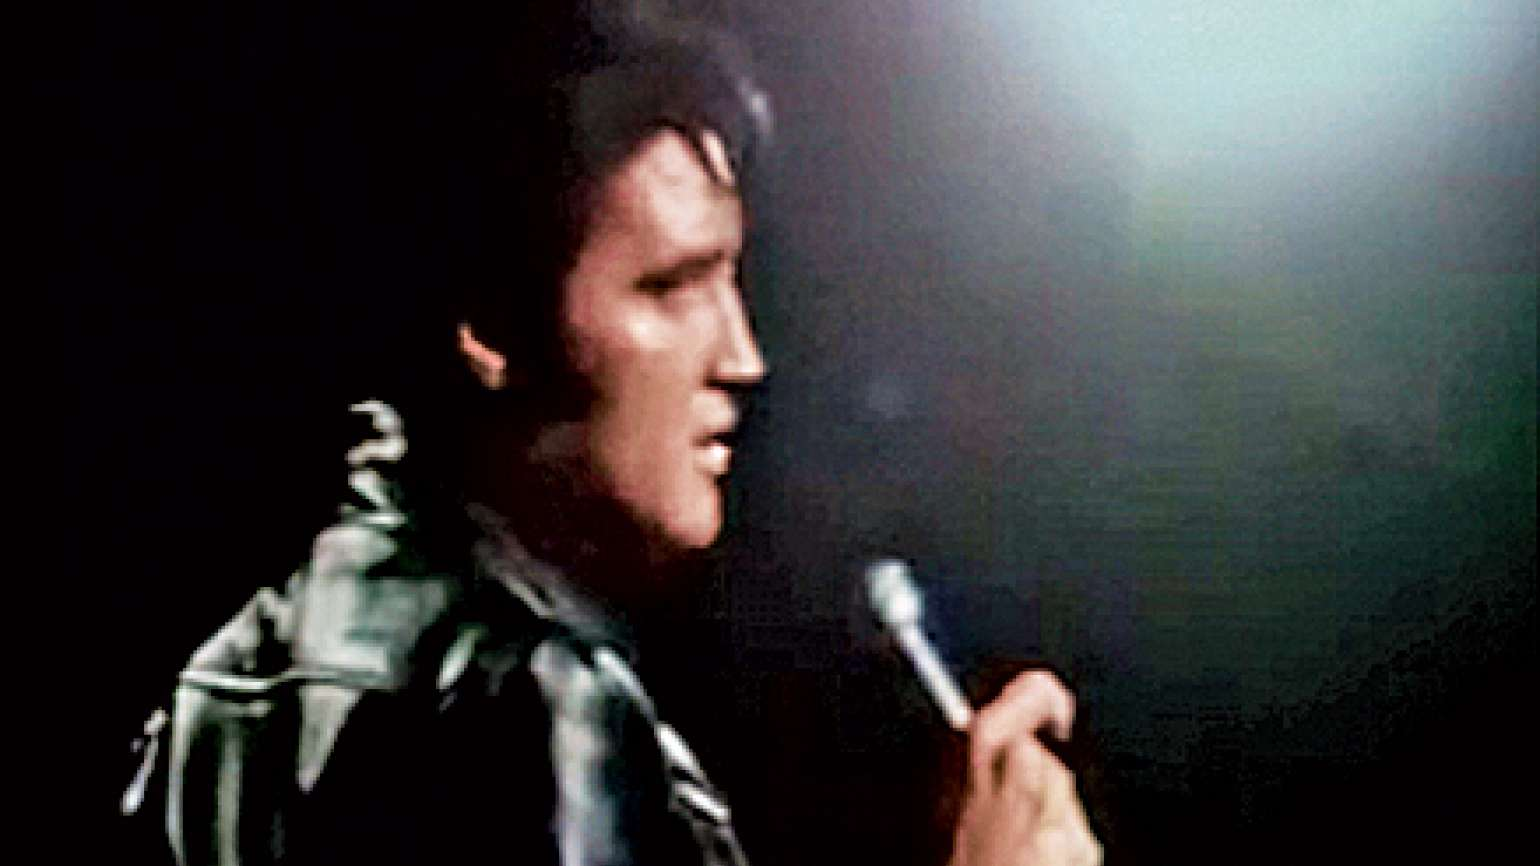 Elvis Presley performing during his 1968 TV comeback special